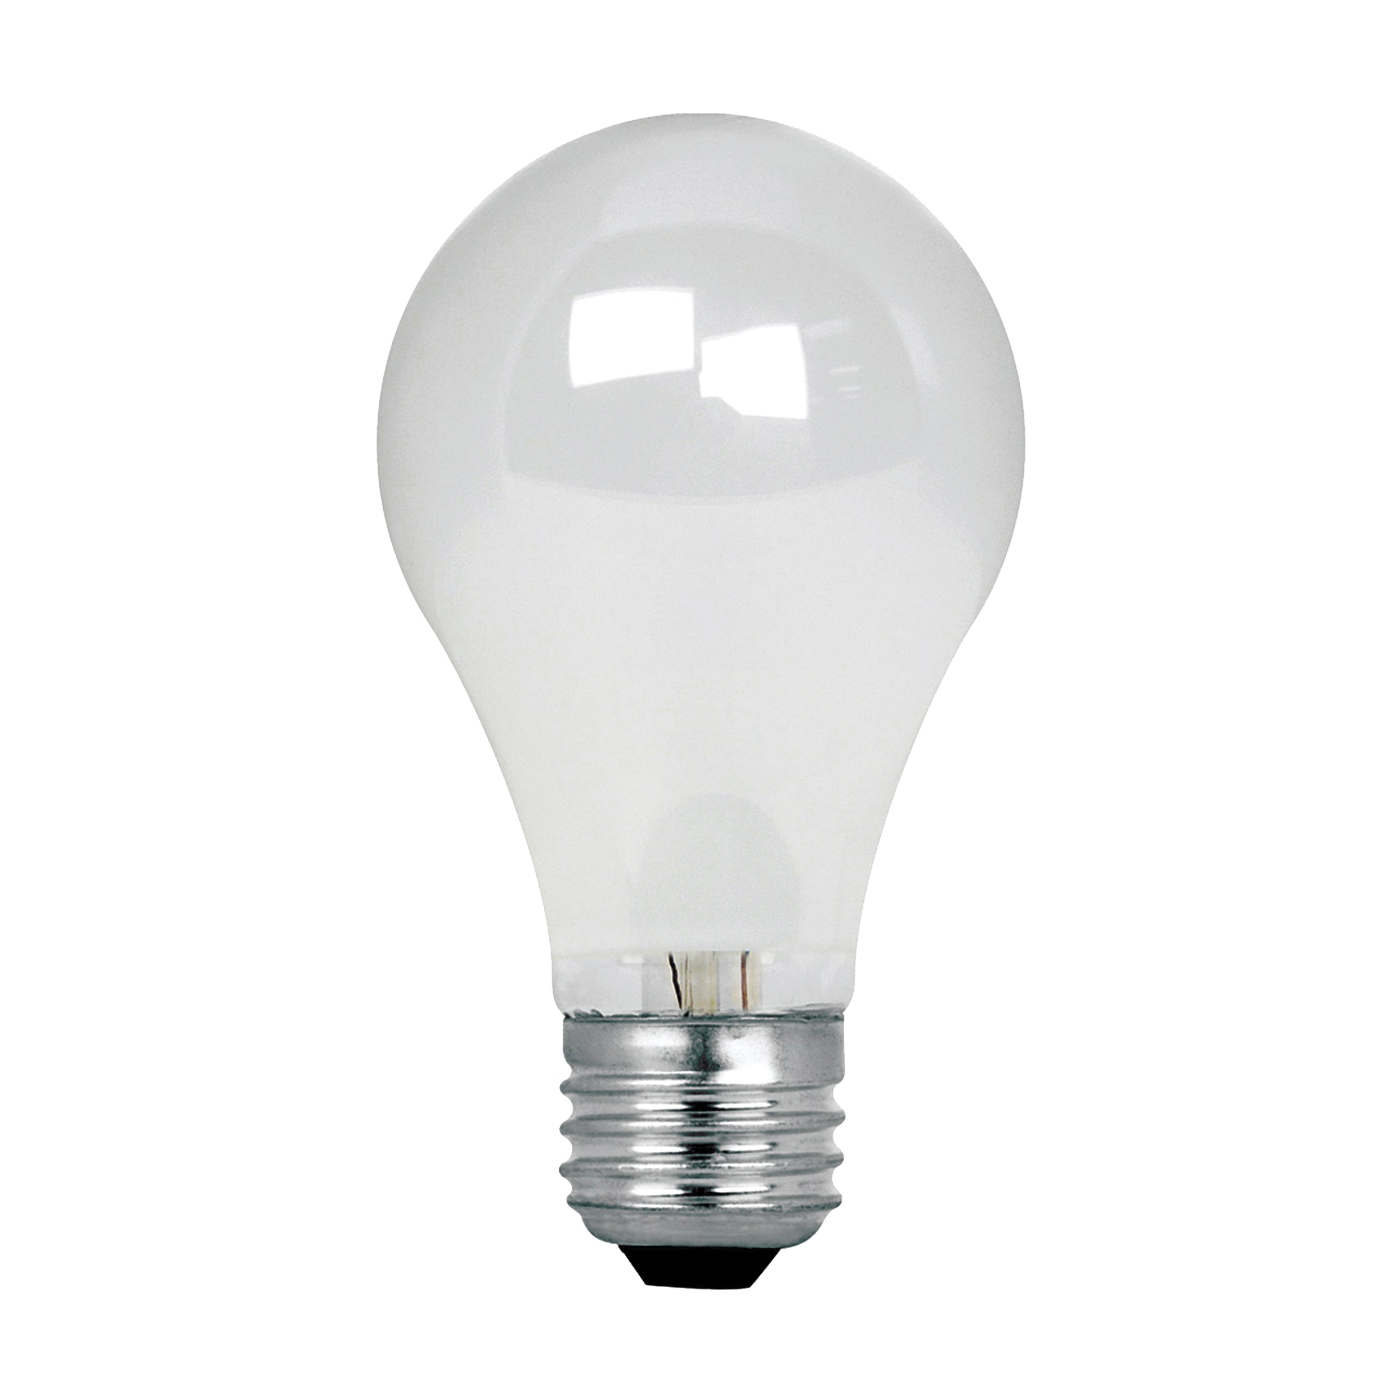 Picture of Feit Electric Q43A/W/DL/4/RP Halogen Lamp, 43 W, Medium E26 Lamp Base, A19 Lamp, Soft White Light, 630 Lumens